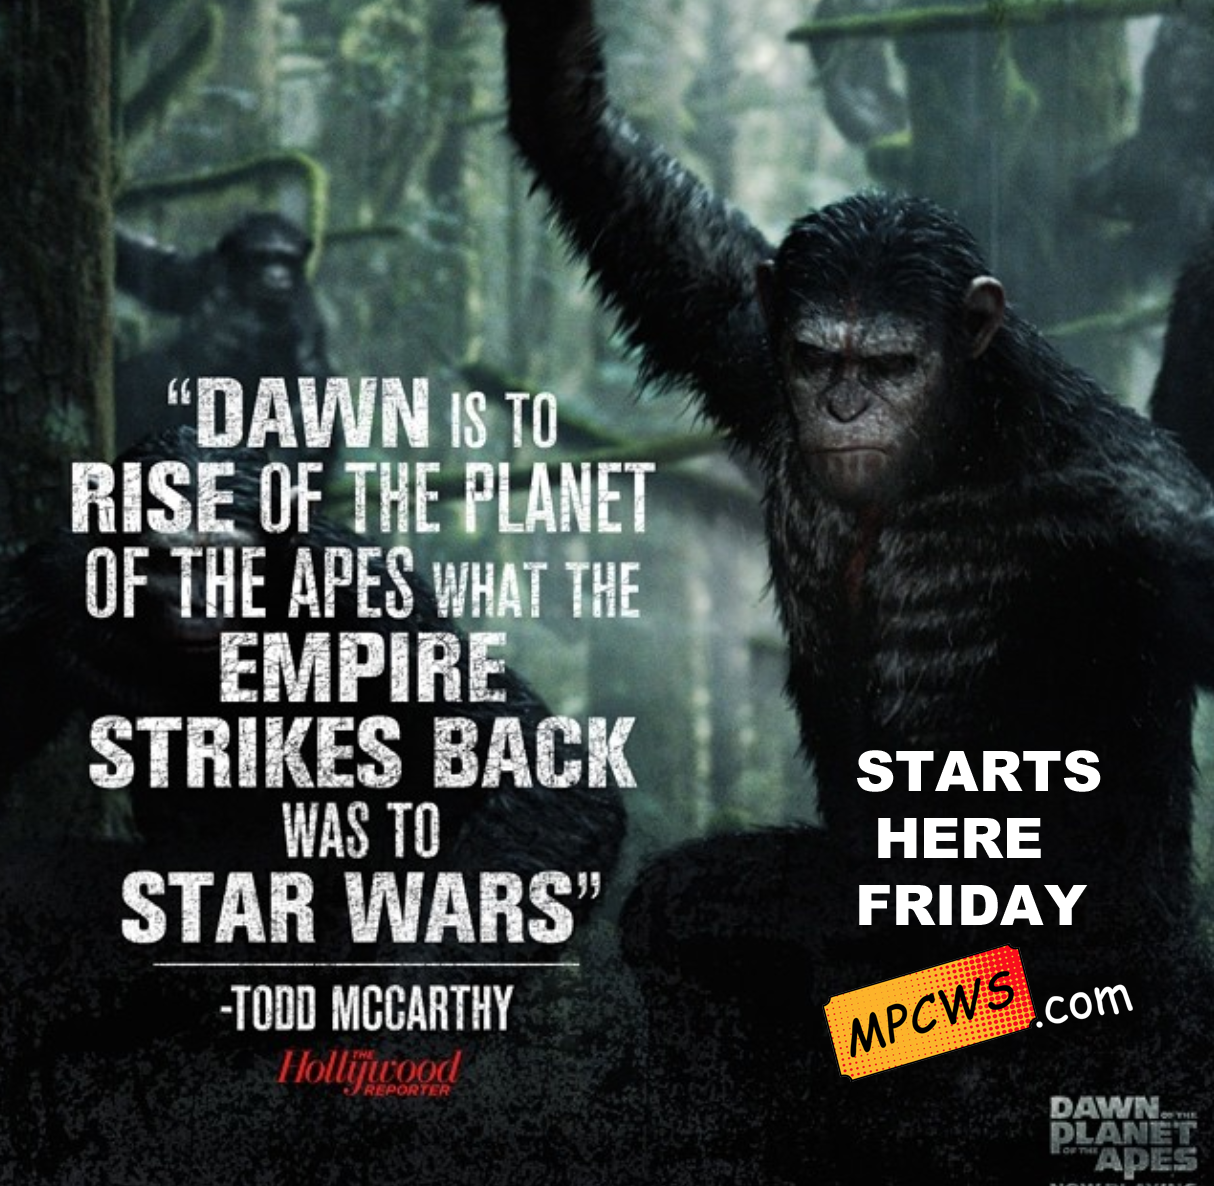 Dawn Of The Of The Apes Starts Here Friday! We are